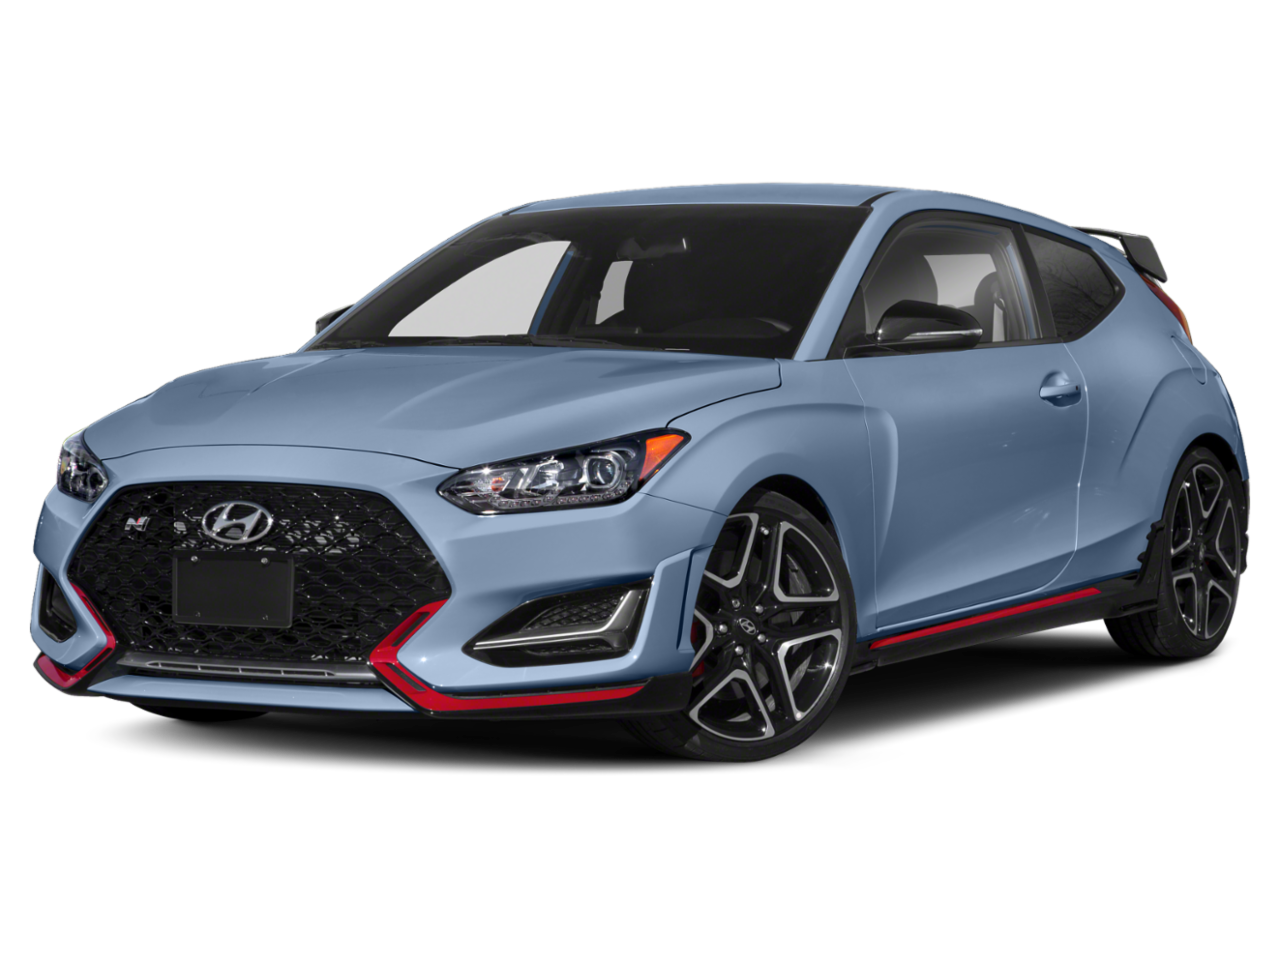 Buyer's Guide: 2020 Hyundai Veloster